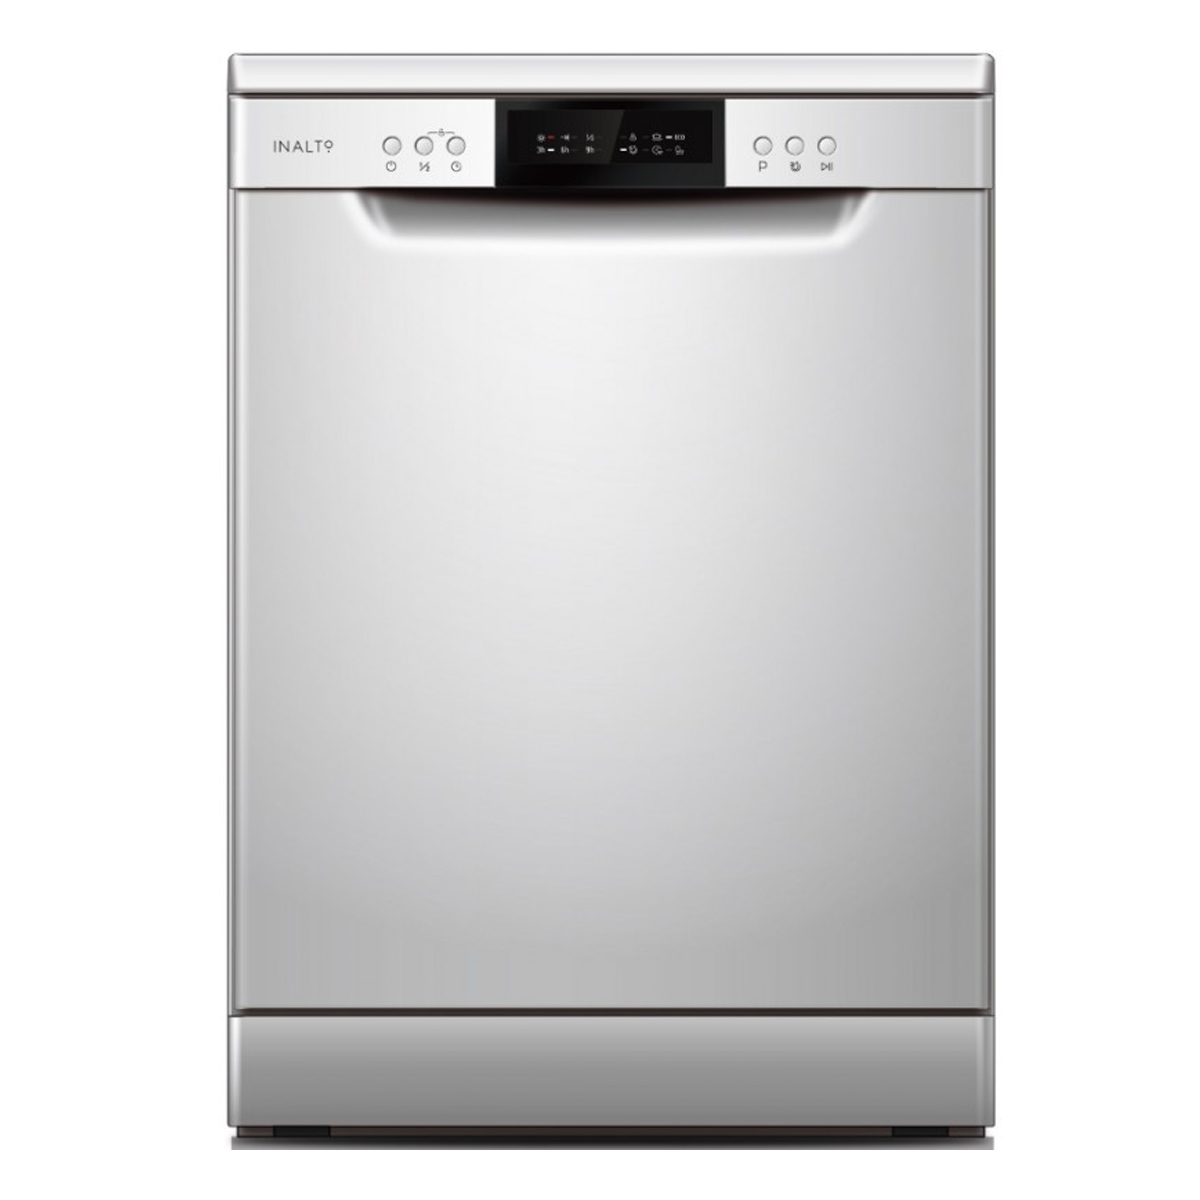 Inalto IDW7S 60cm Stainless Steel Freestanding Dishwasher 138309